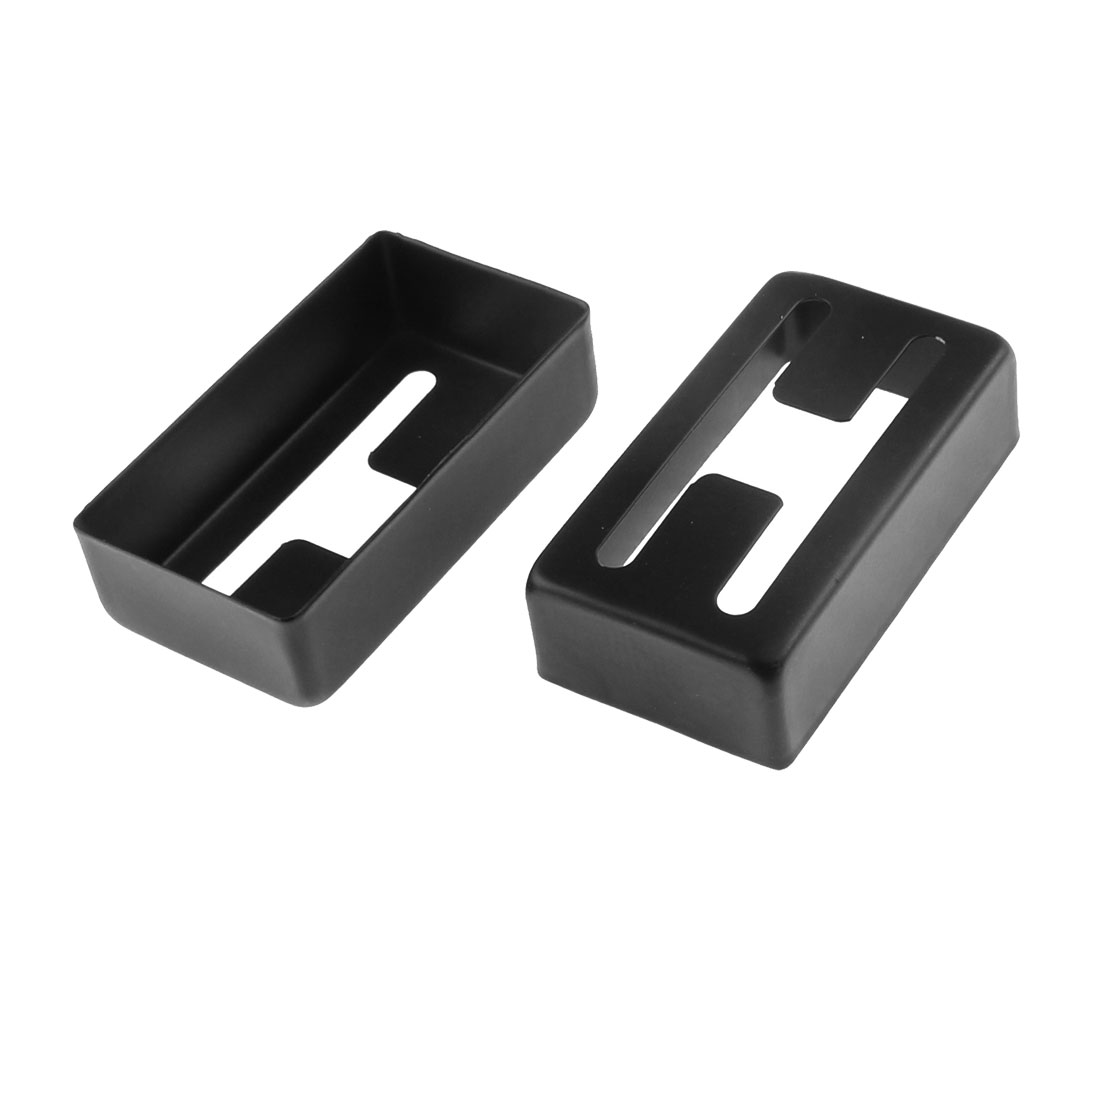 7cm x 4cm x 2cm Electric Guitar Humbucker Pickup Metal Cover Black 2pcs